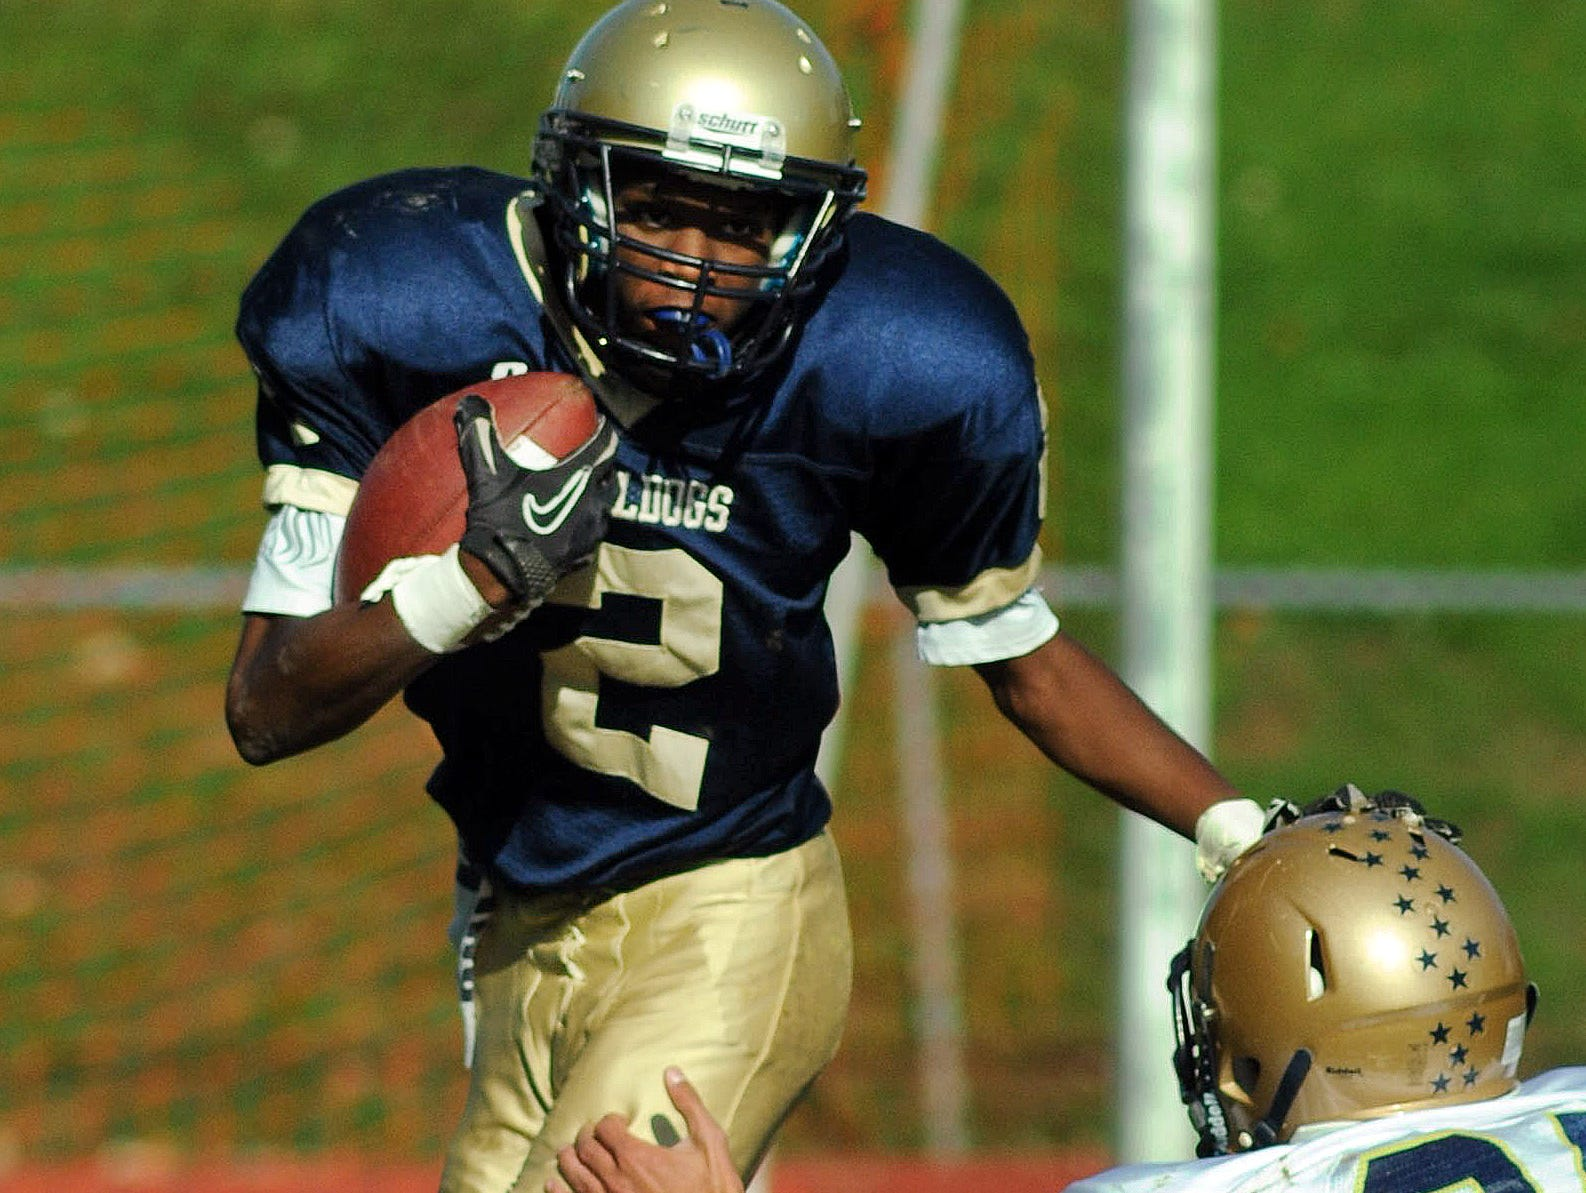 Beacon High School's Davon Cousar attempts to run around a tackle during the last game between Beacon and Our Lady of Lourdes before Saturday, held Oct. 20, 2012.